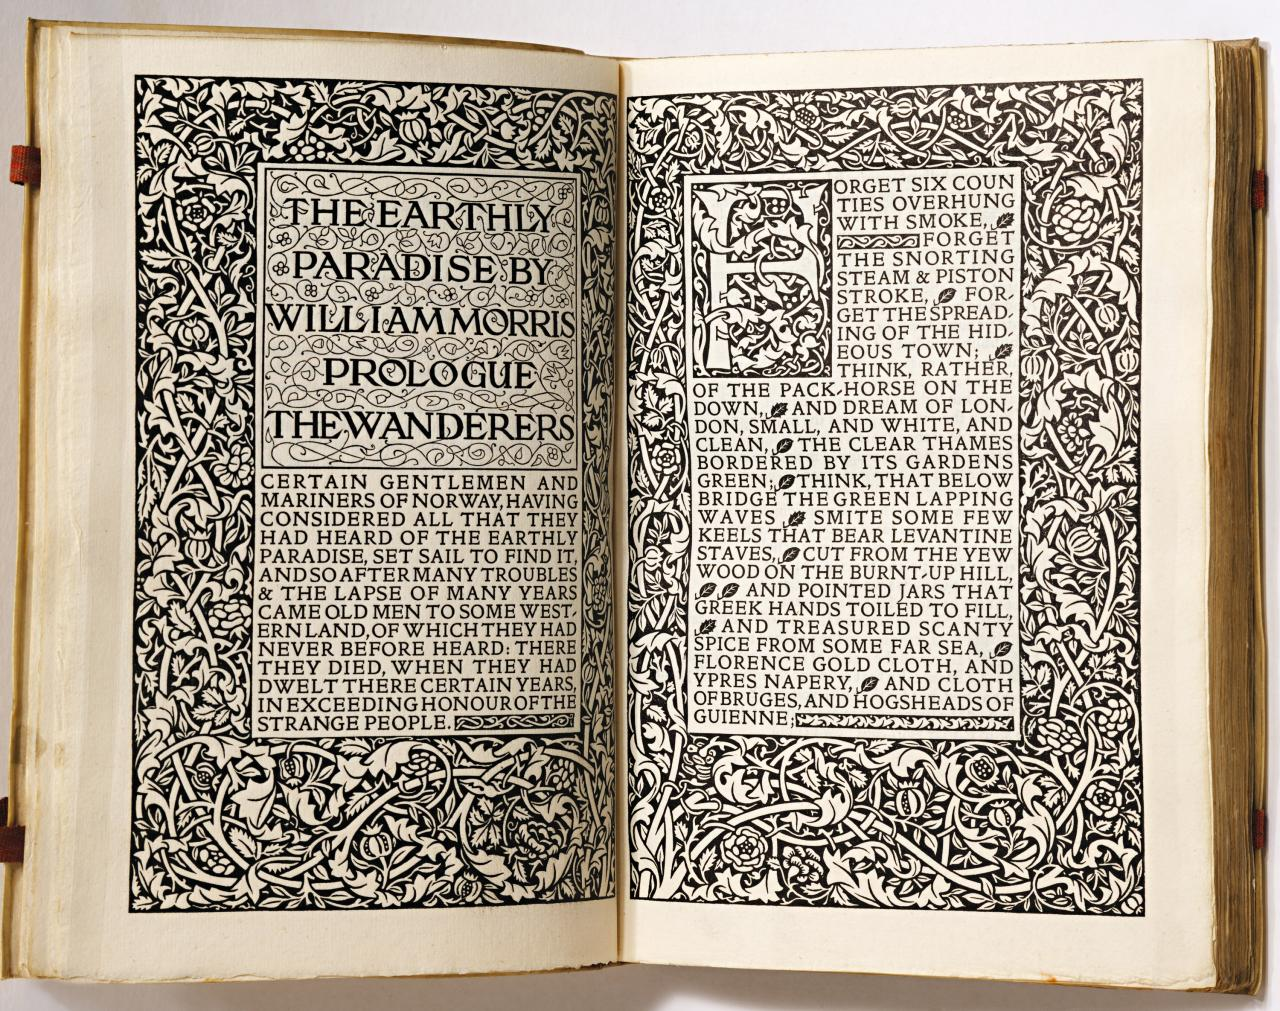 The Earthly Paradise by William Morris. Vol 1